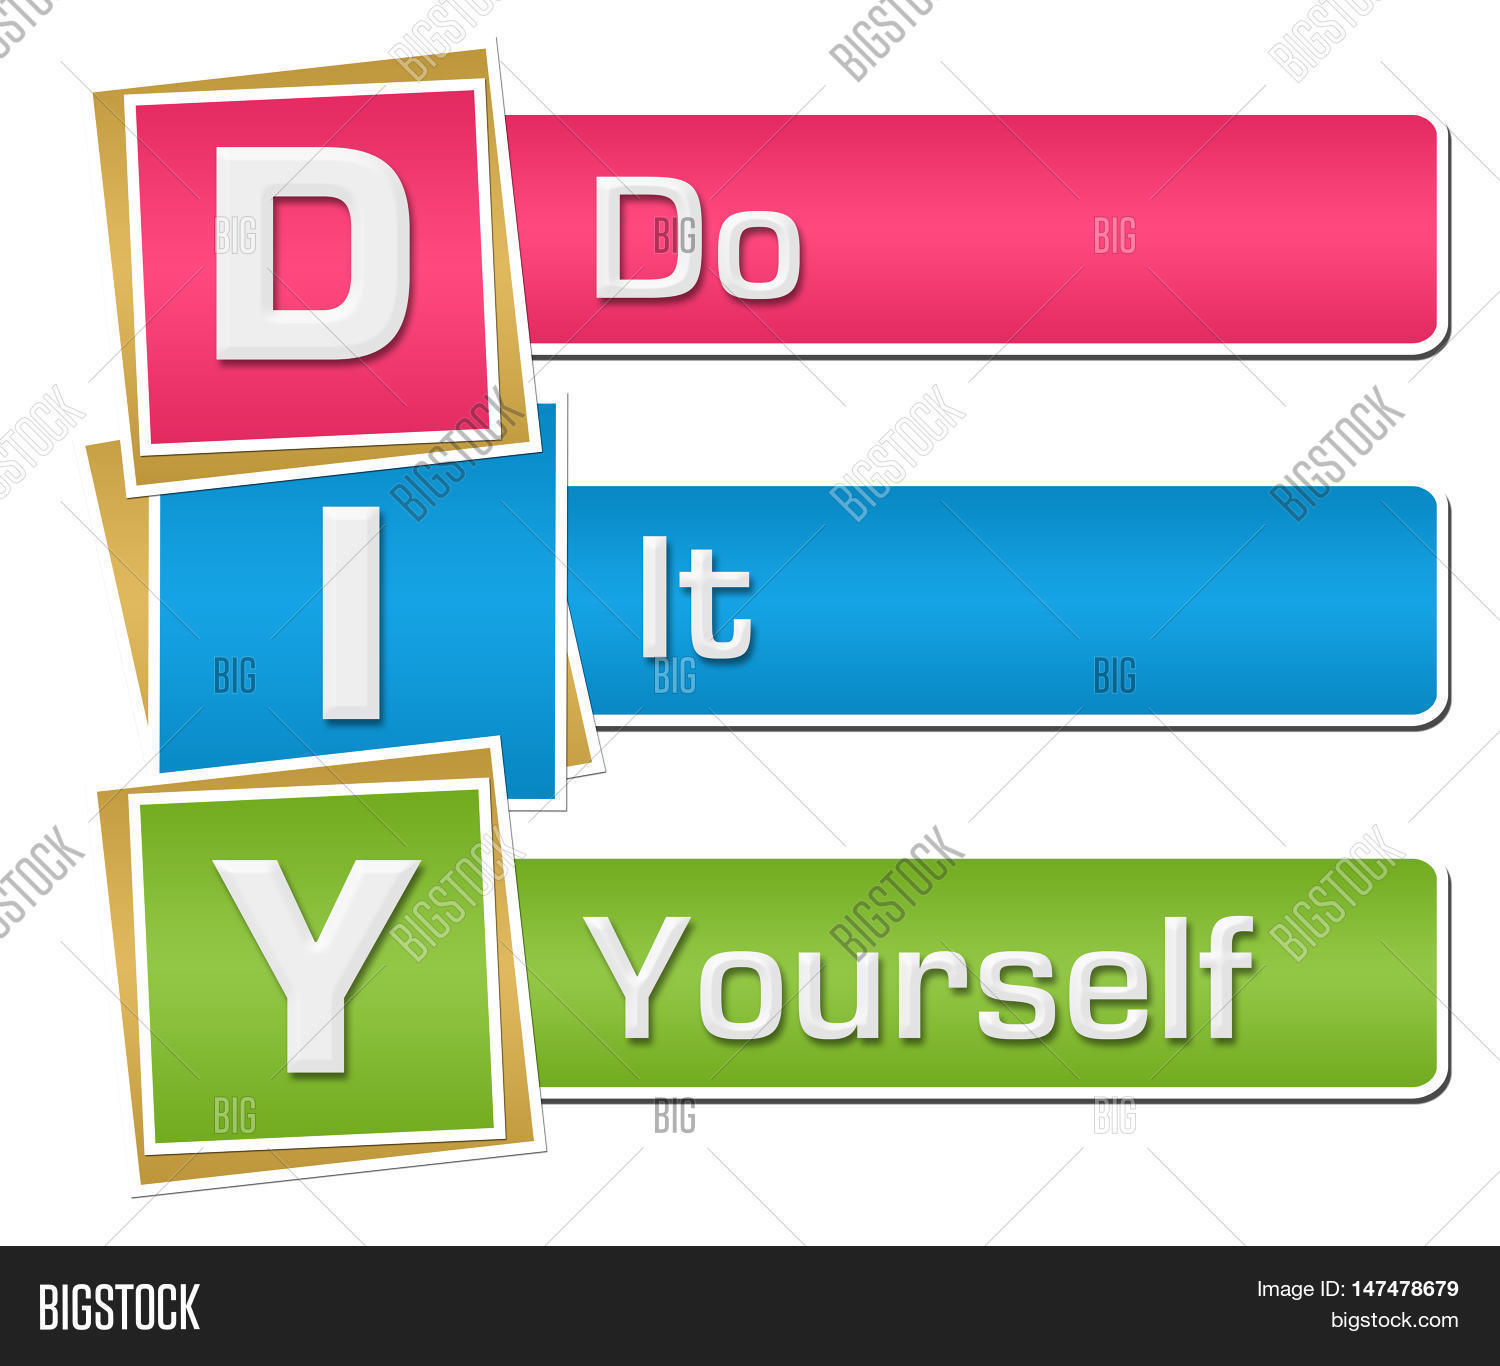 Diy - Do Yourself Text Alphabets Image & Photo | Bigstock